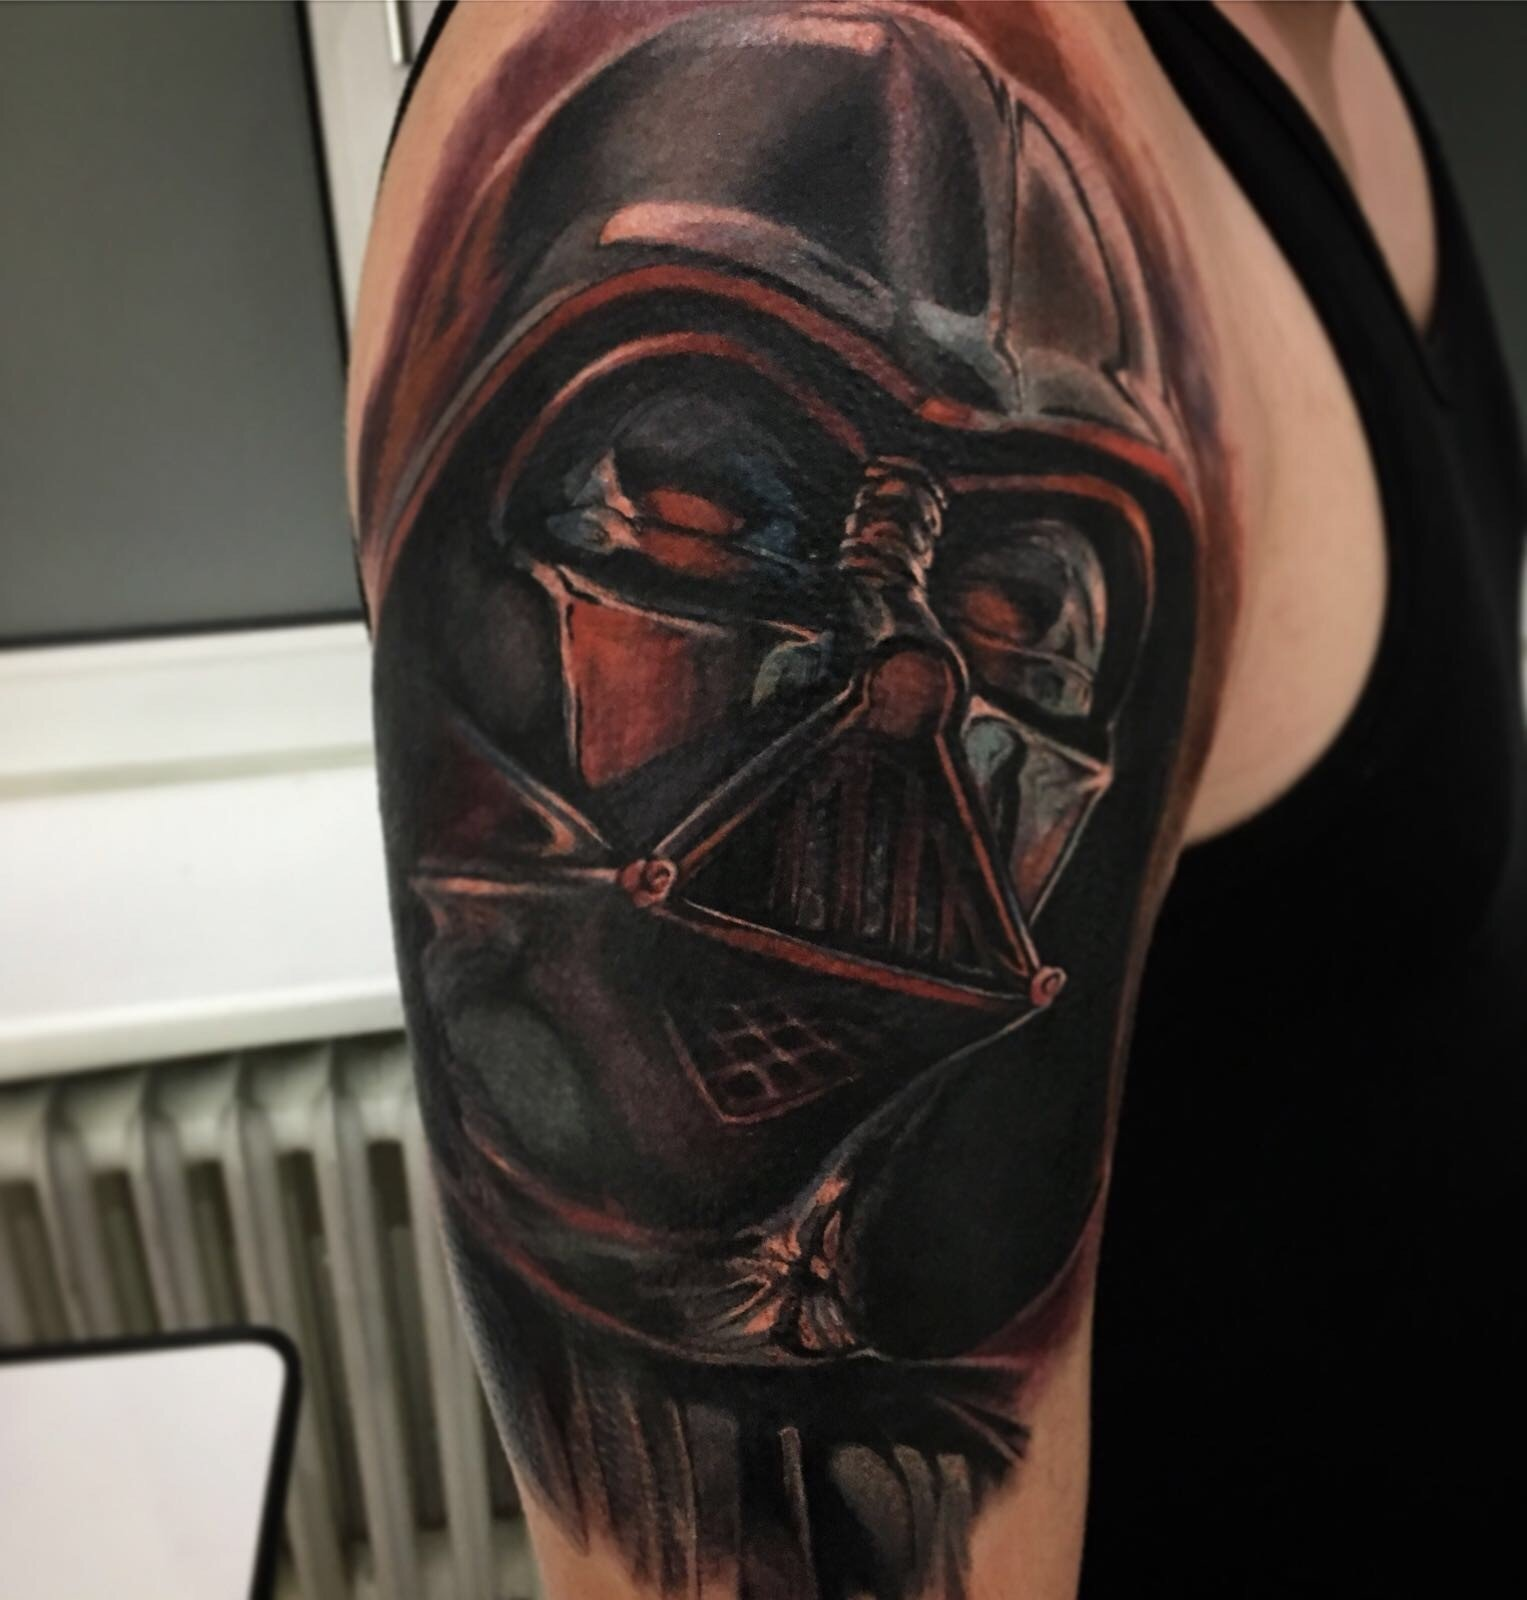 Ligera-ink-tattoo-milano-tatuaggi-milano-tatuatore-milano-tatuaggi-realistici-milano-tattoo-realistici-milano-Darth-fener-star-wars-tattoo-tatuaggio-star-war